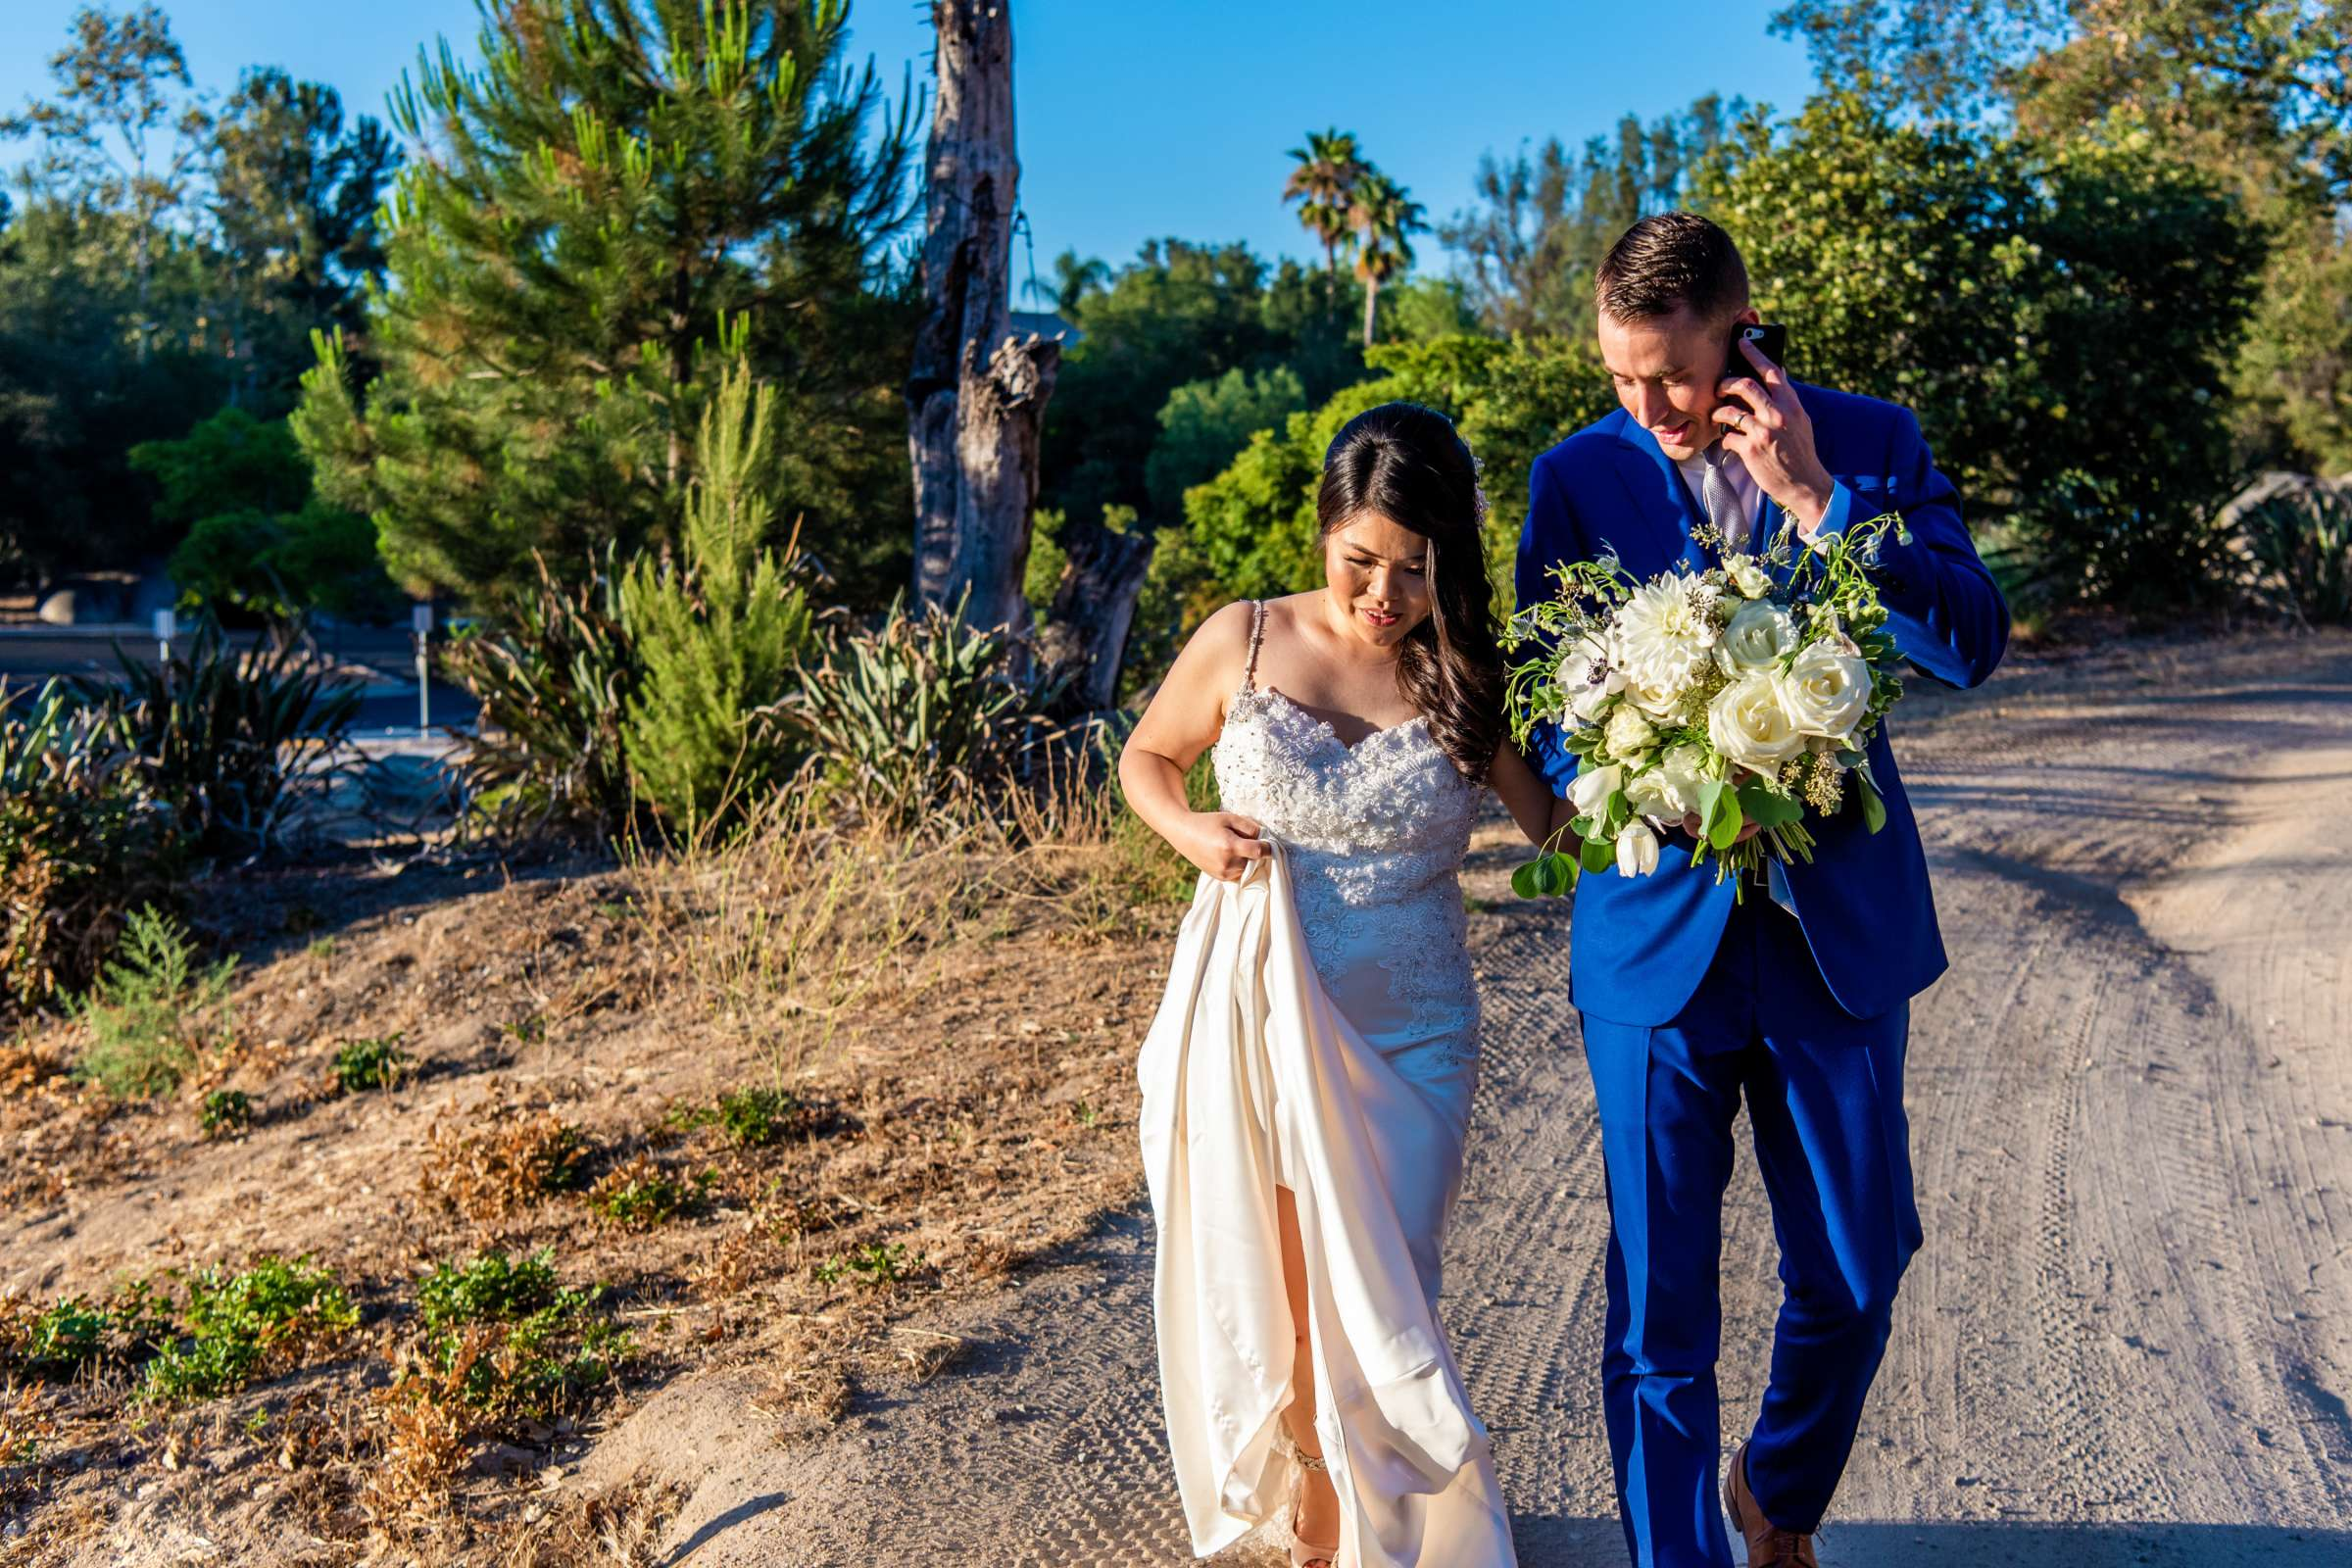 Mt Woodson Castle Wedding coordinated by I Do Weddings, Aya and Jared Wedding Photo #486985 by True Photography